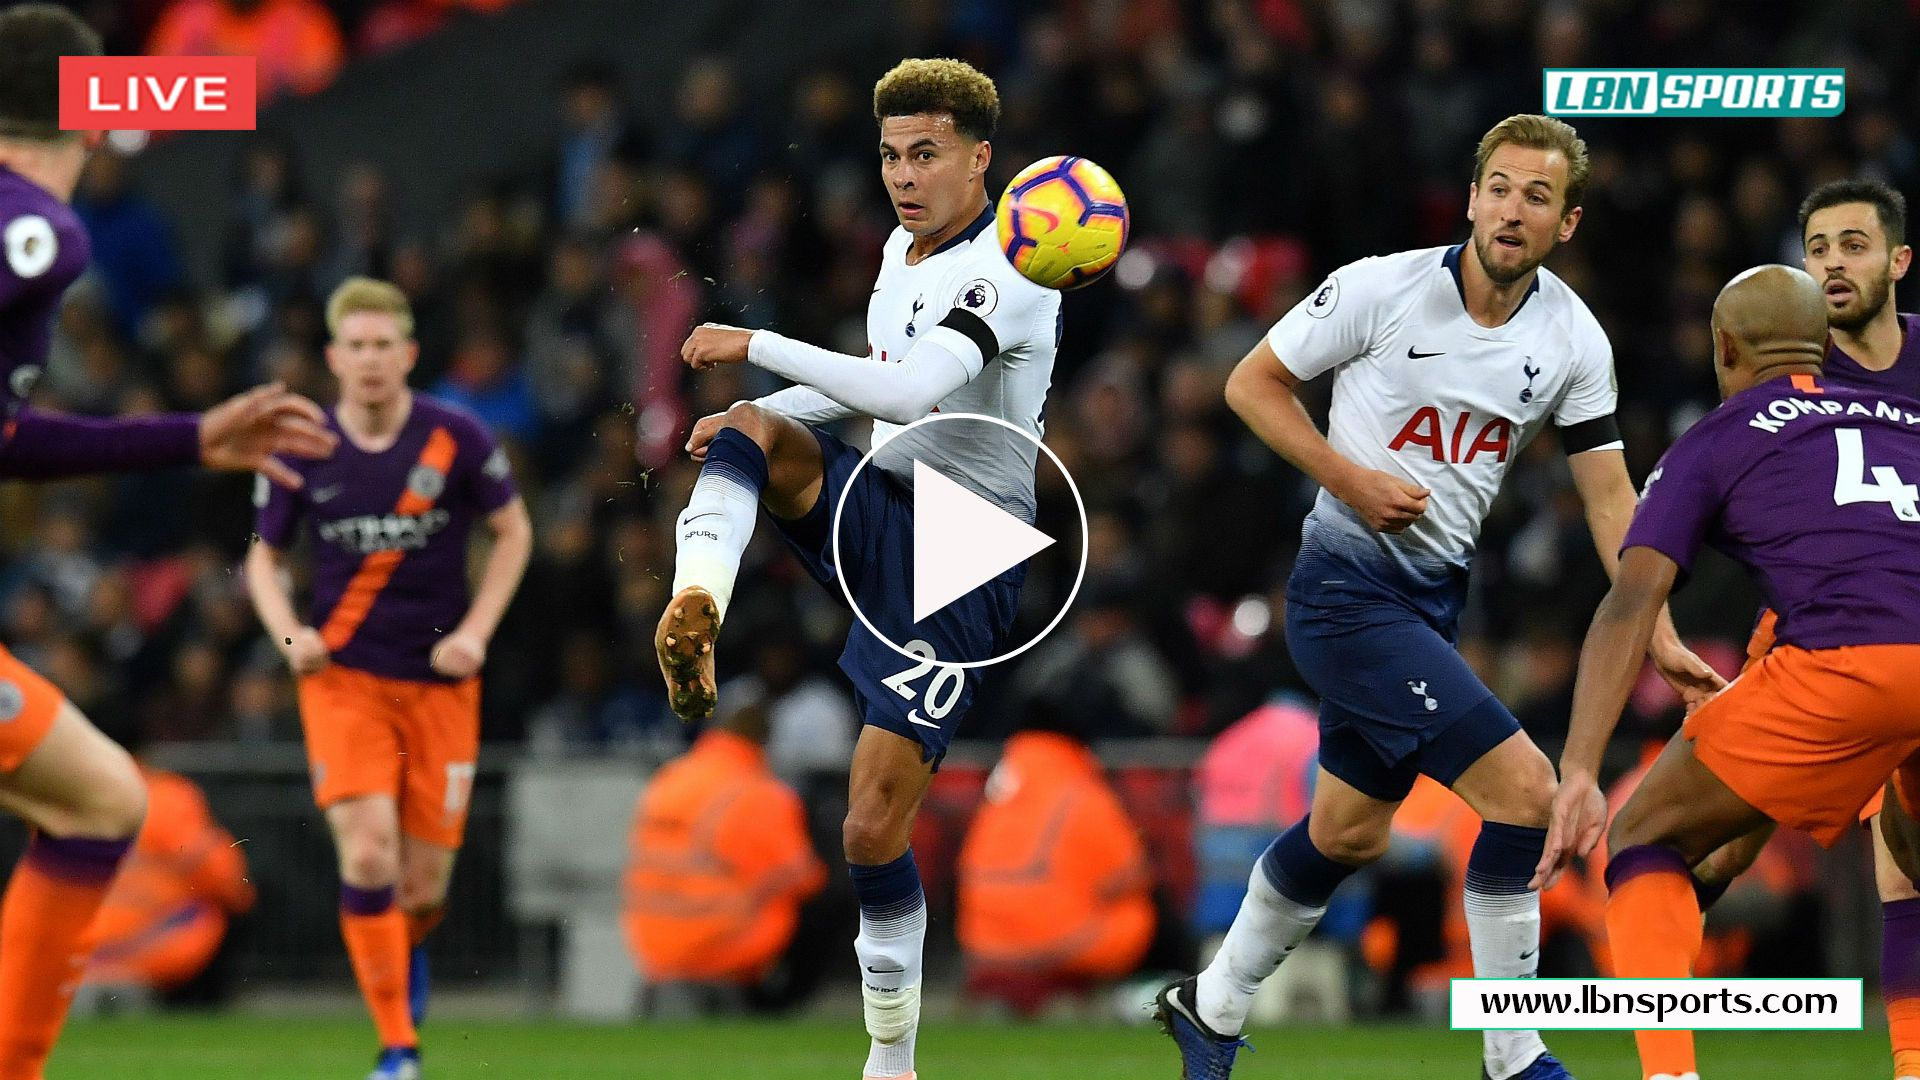 Tottenham Vs Man City Live Reddit Soccer Streams 9 Apr 2019 Champions League Live Streaming T Champions League Live Champions League Live Cricket Streaming